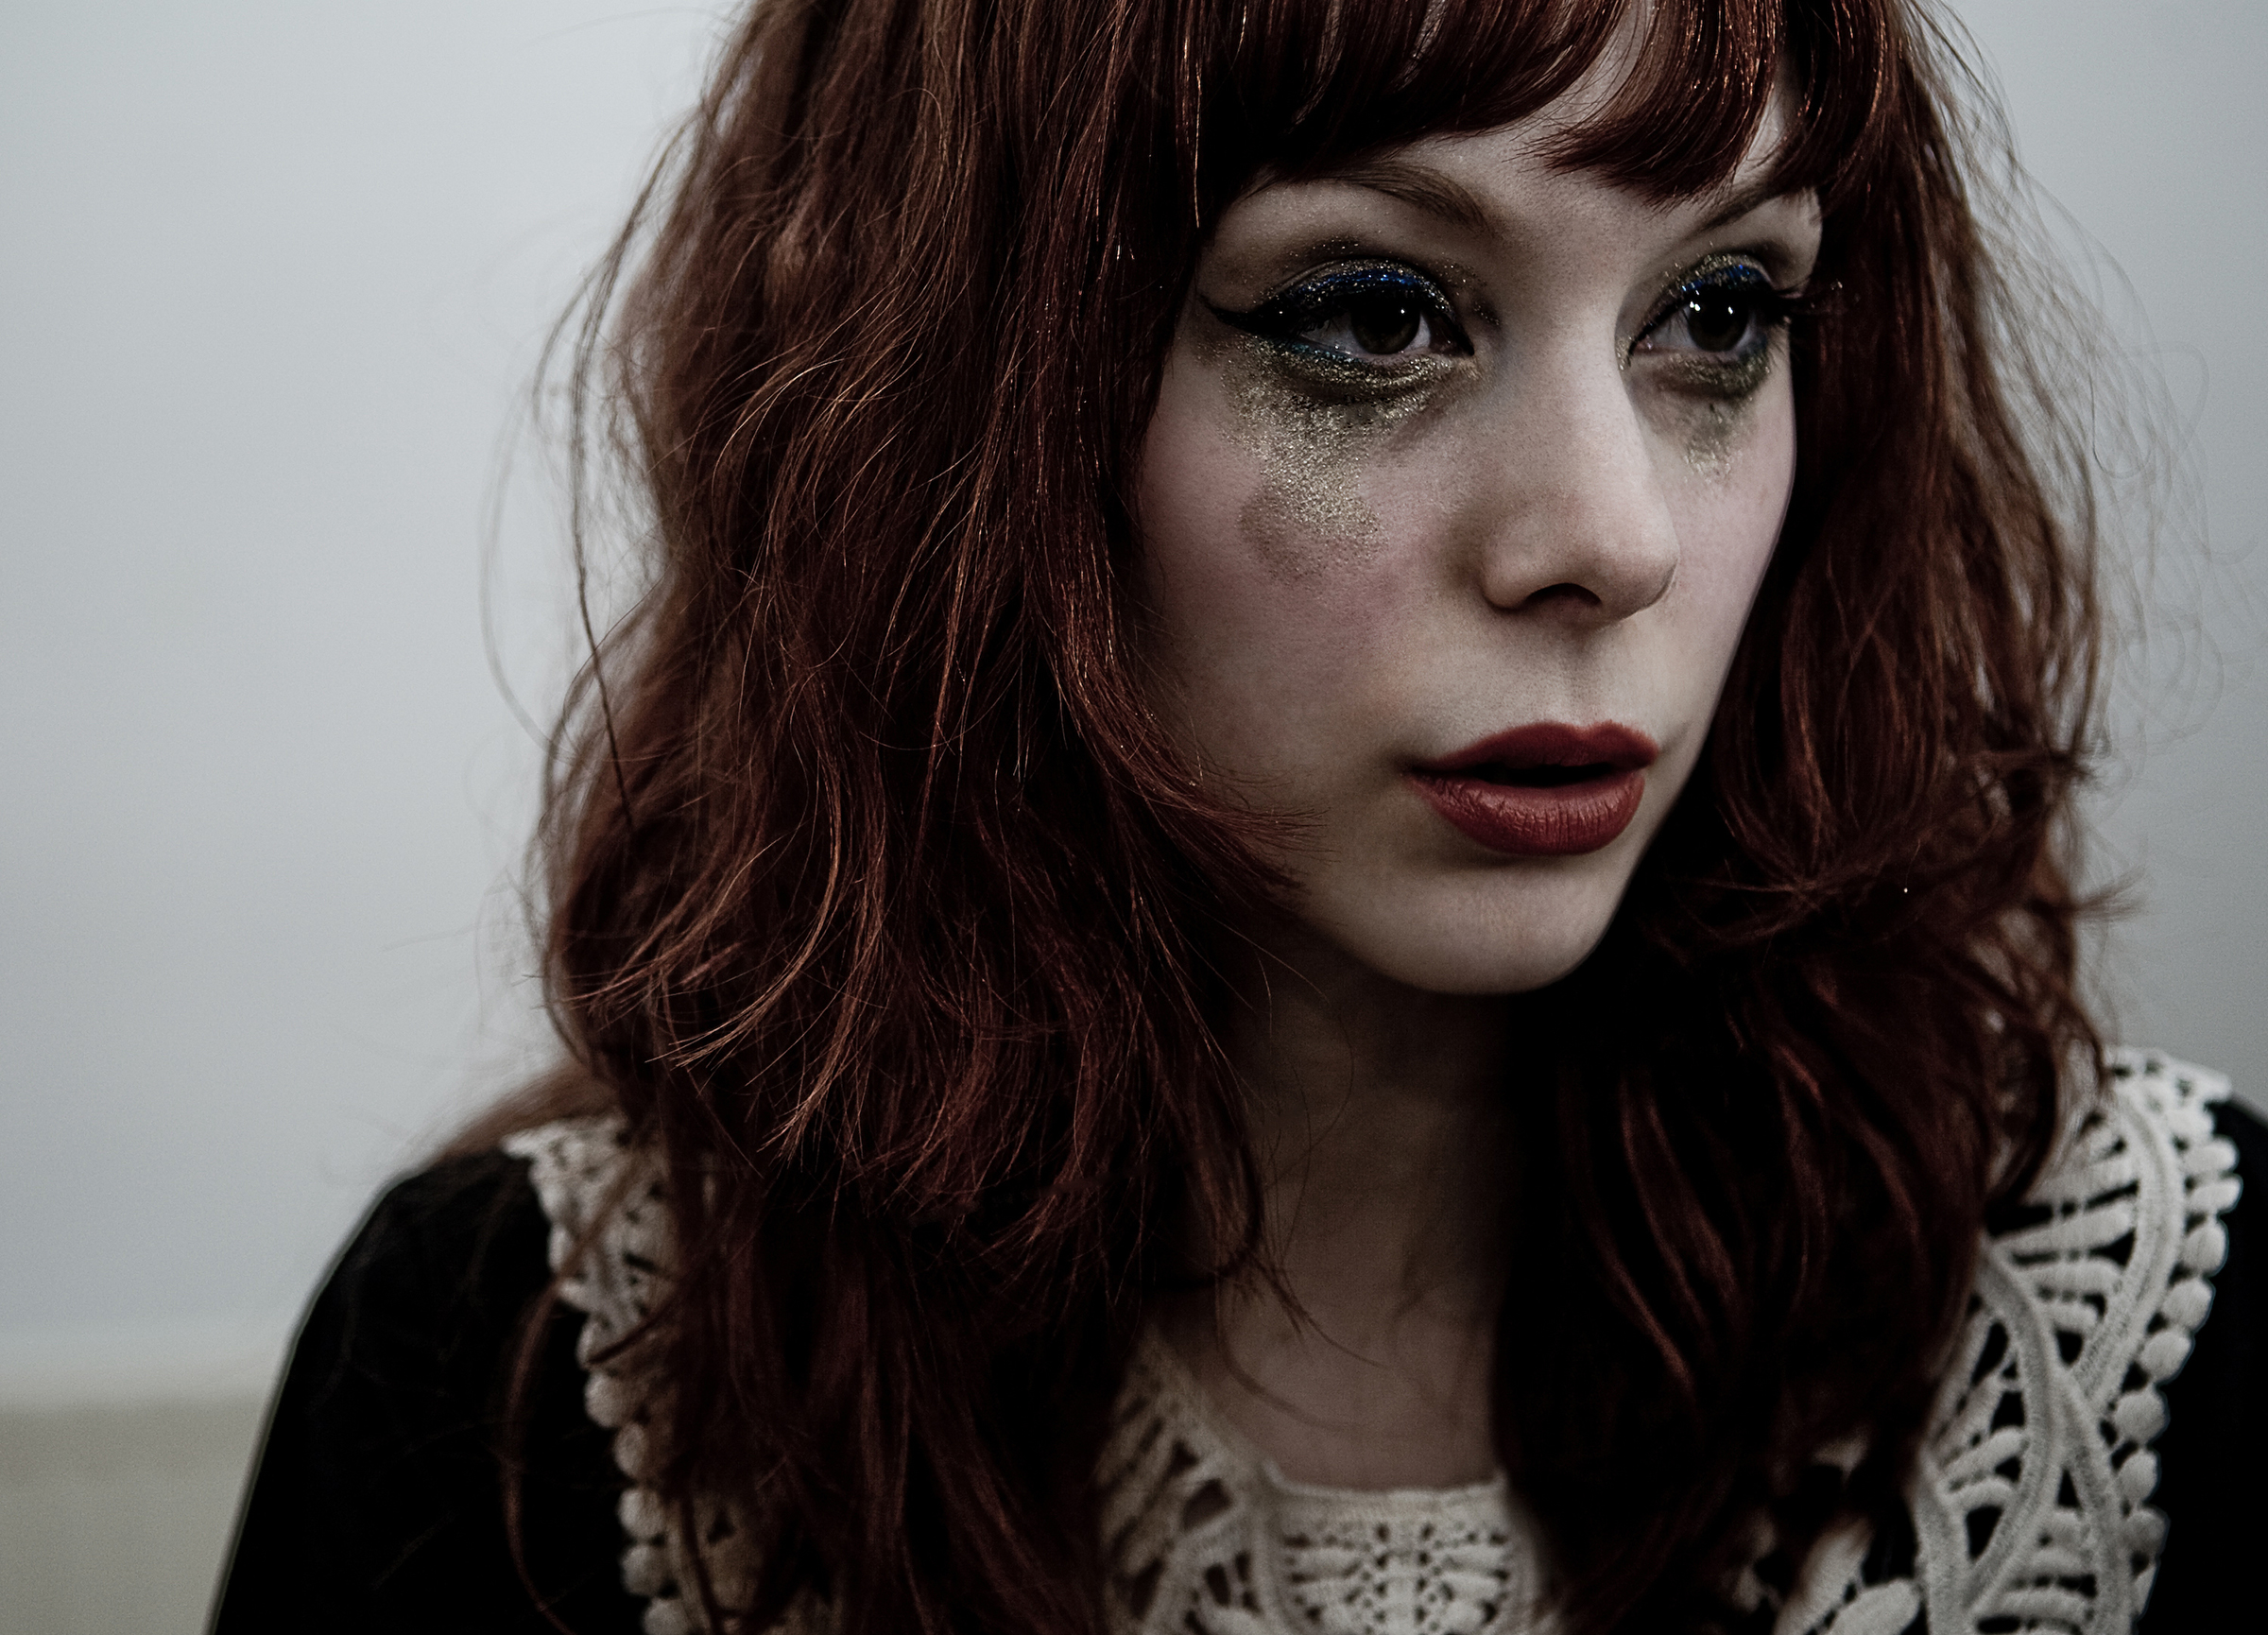 THE ANCHORESS shares video for 'Unravel' from upcoming album 'The Art Of Losing' 1